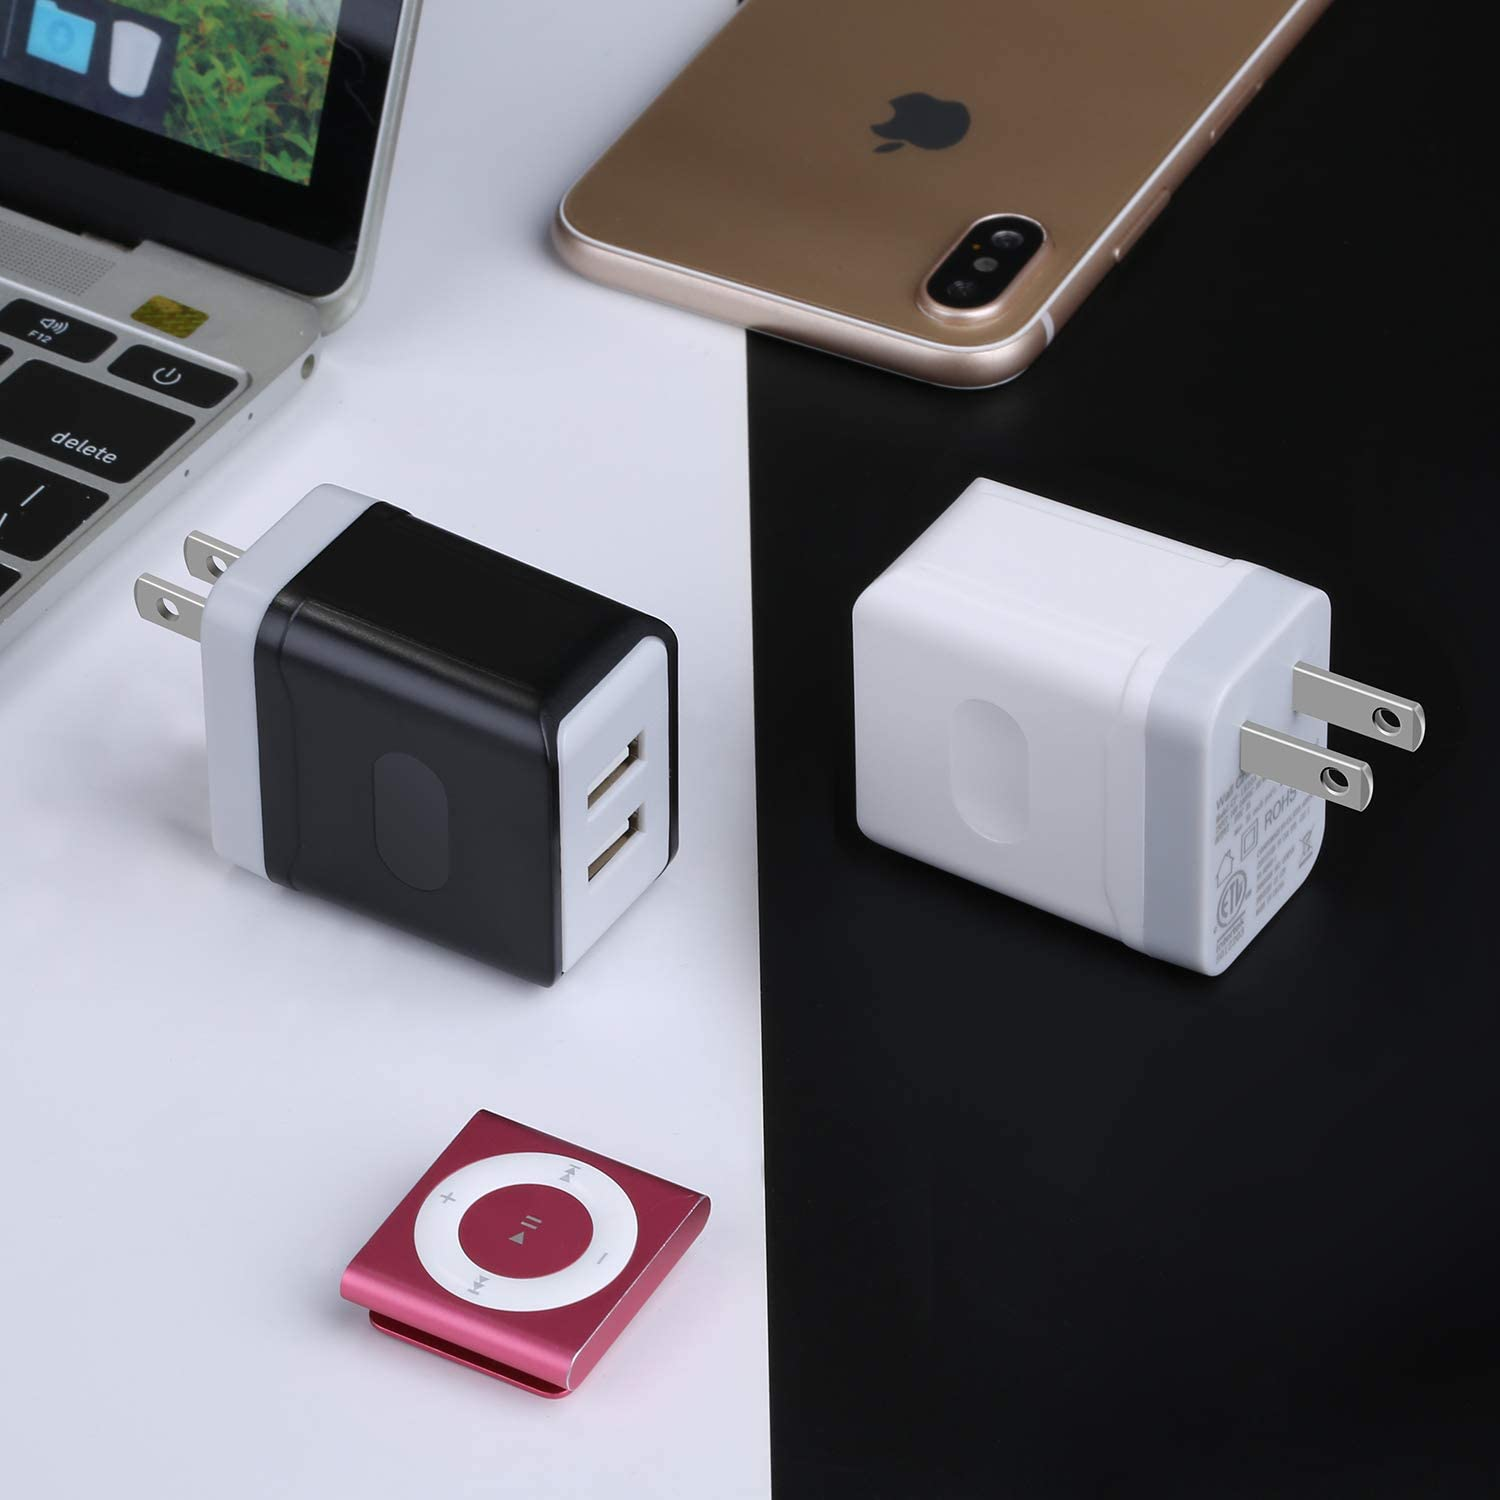 Black White OKRAY USB Wall Charger Android 2 Pack 5V//3A Portable Dual USB Travel Power Adapter Wall Charger Plug Charging Block Phone Charger with Wall Plug Compatible iPhone XS Samsung S10//S9//S8